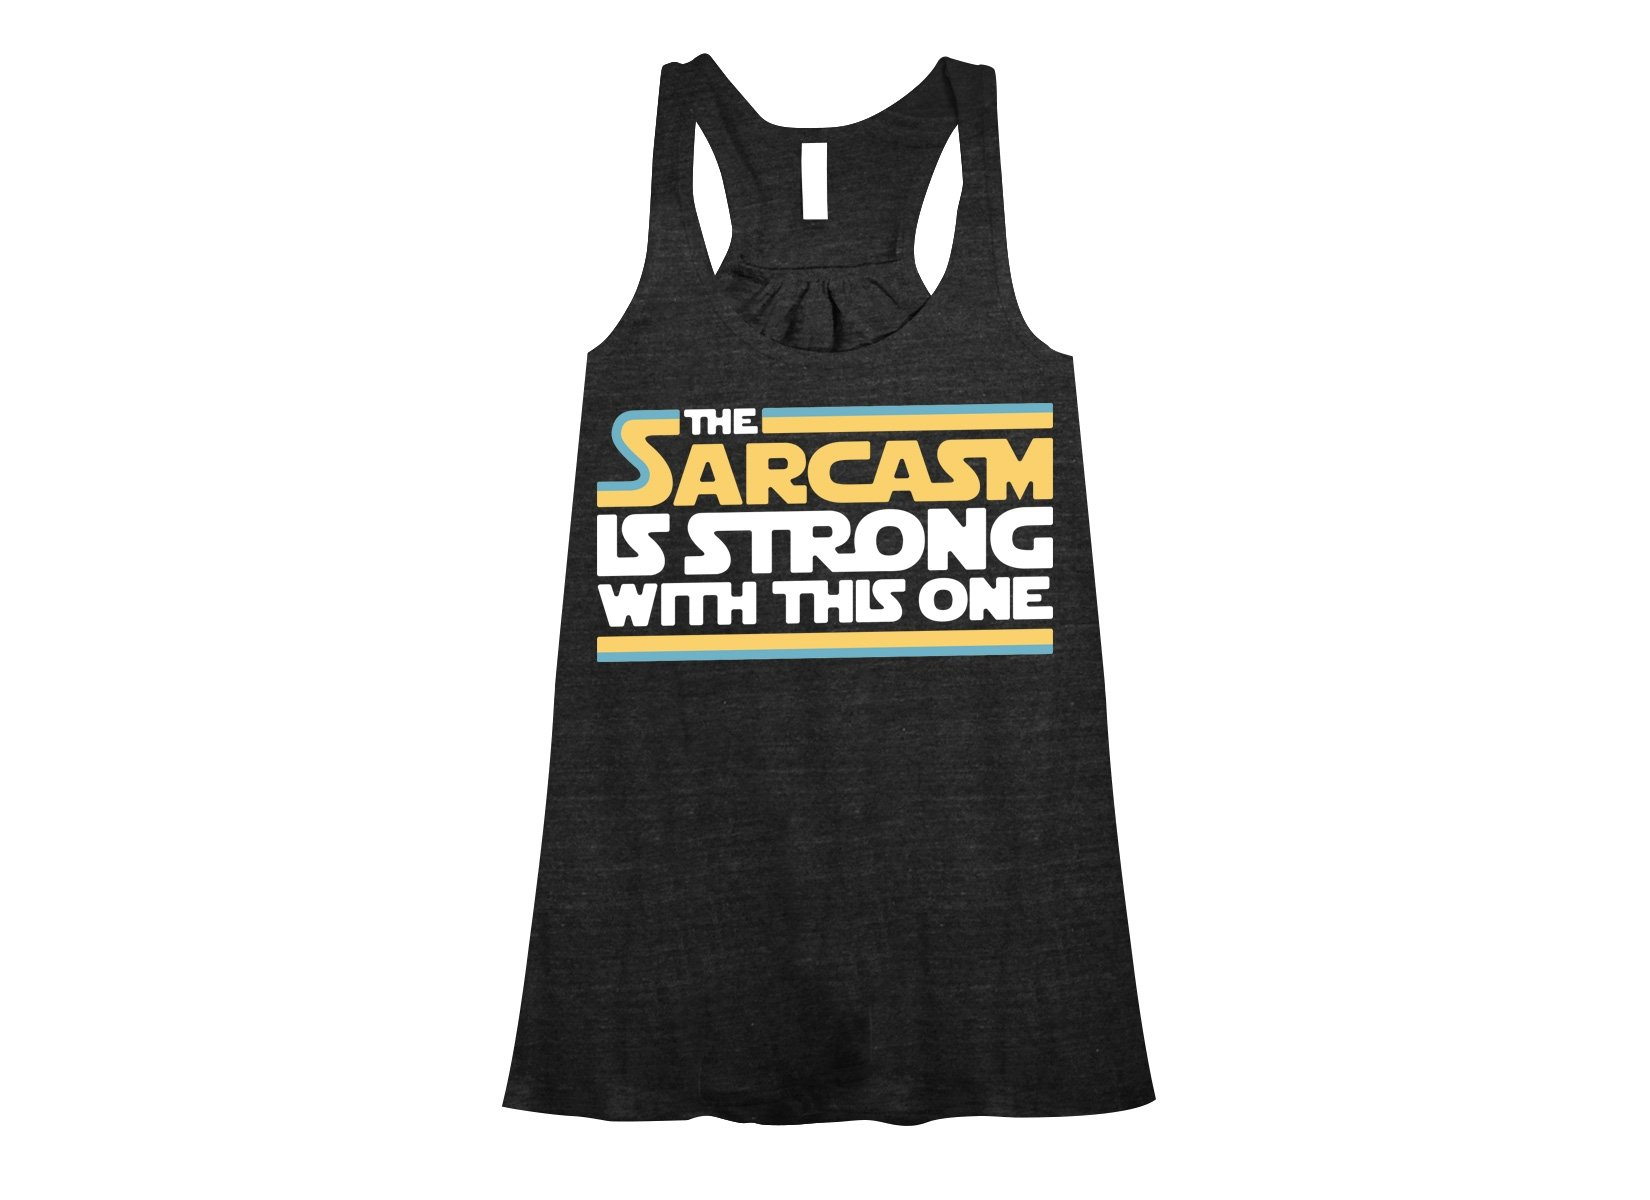 The Sarcasm Is Strong With This One on Womens Tanks T-Shirt